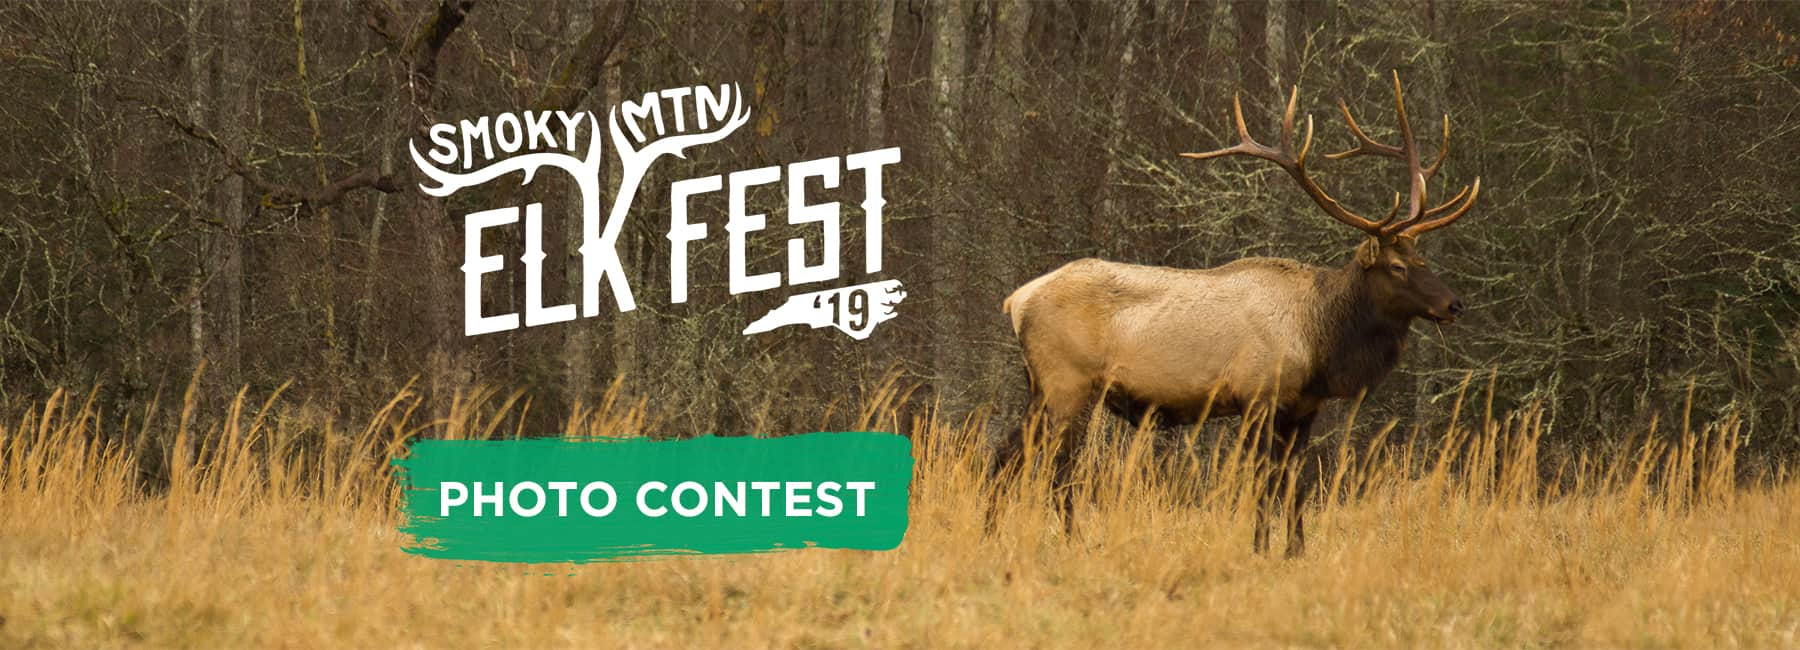 elk fest photo contest voting